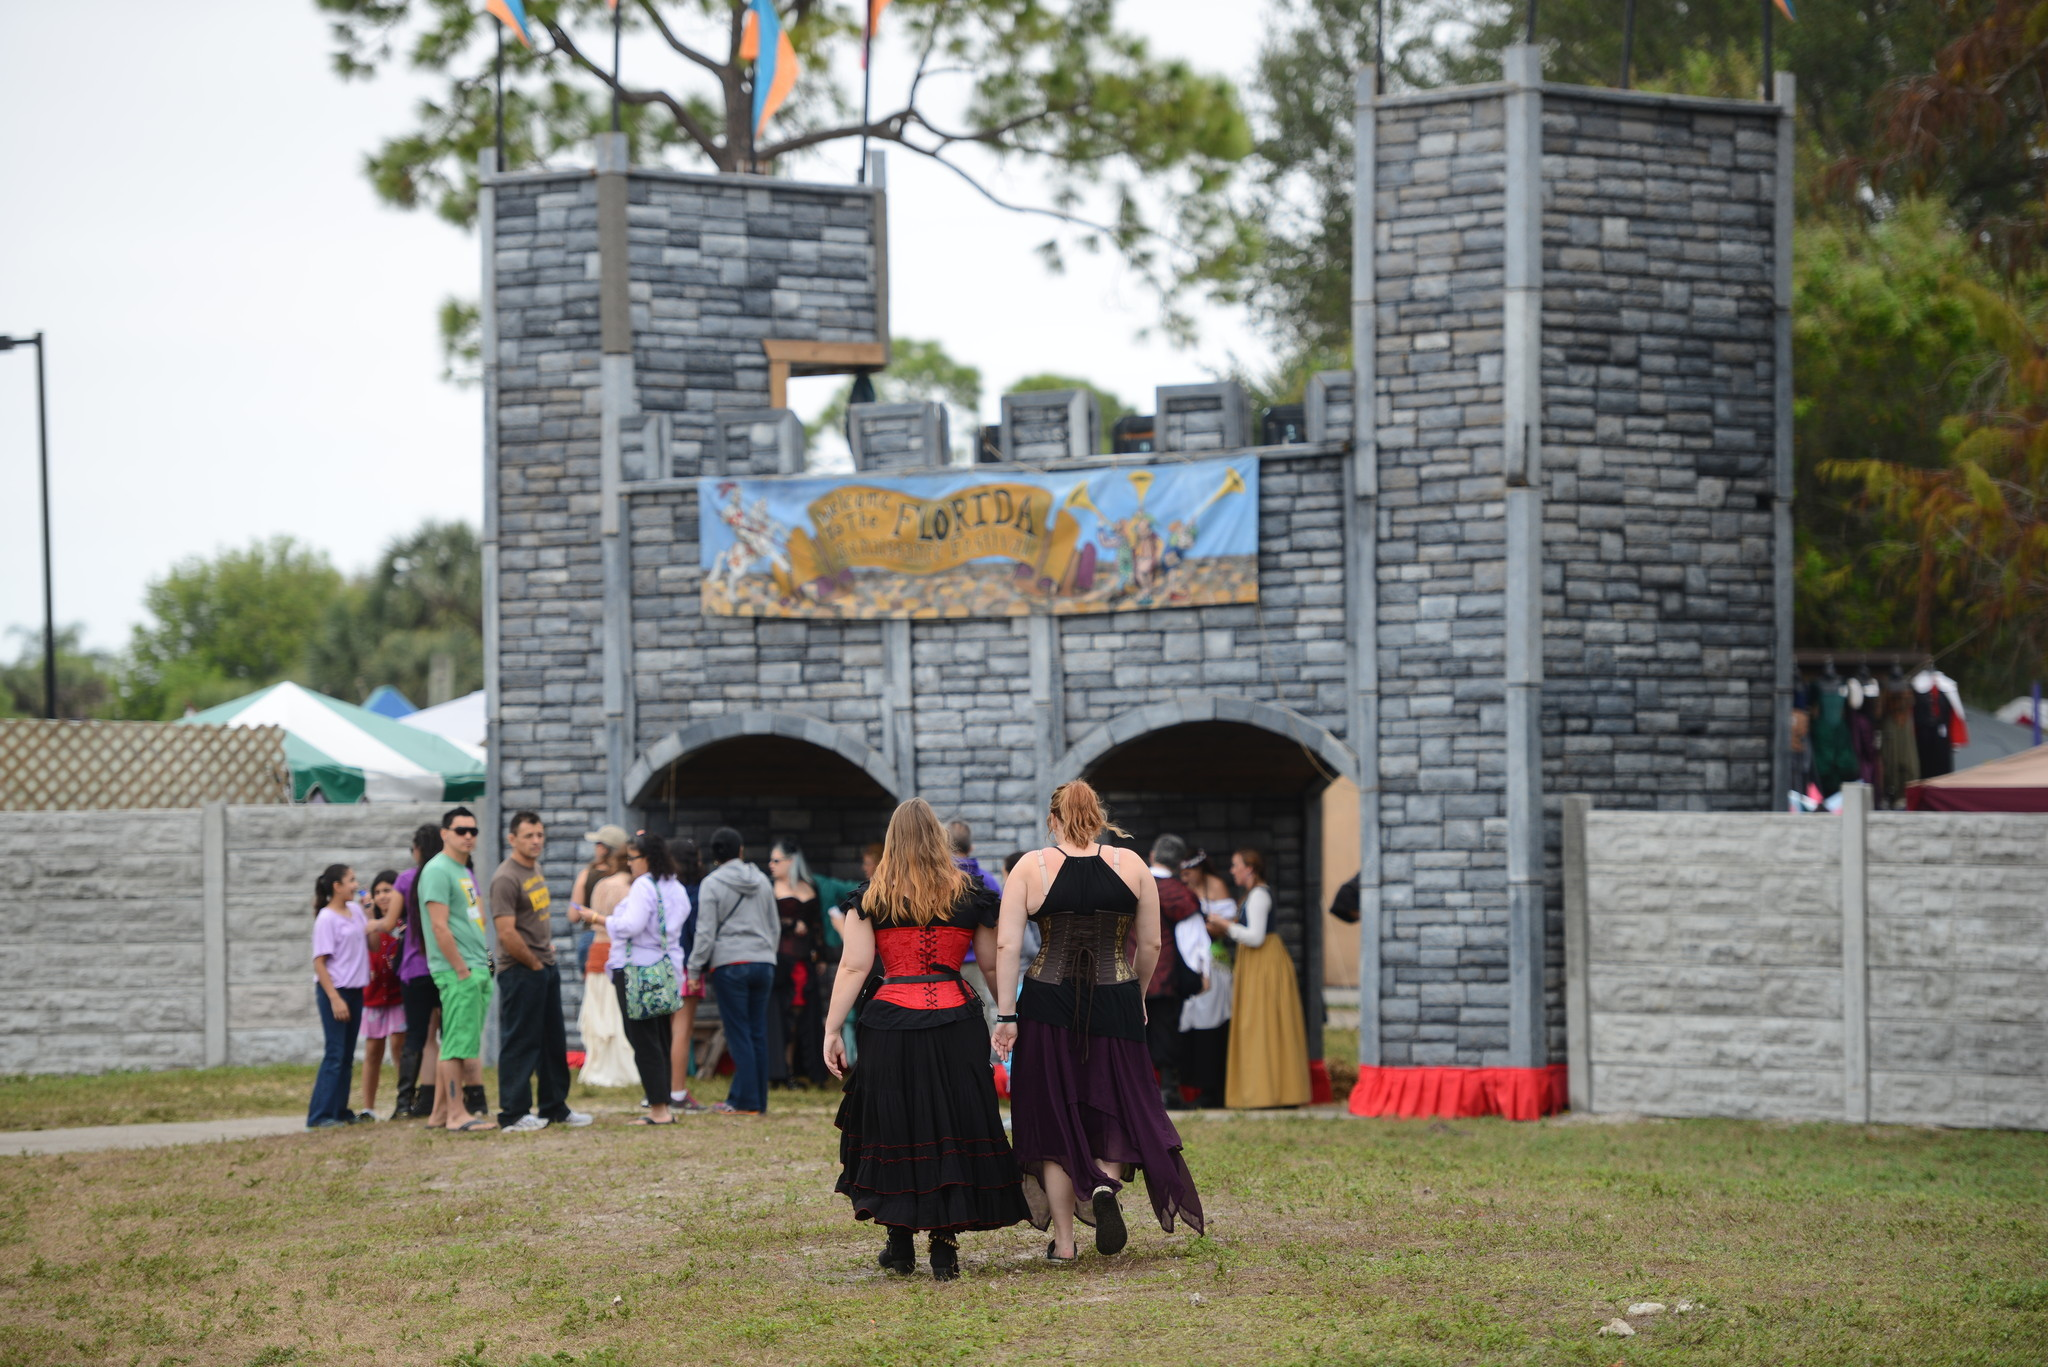 Renaissance Festival photos - Castle Wall